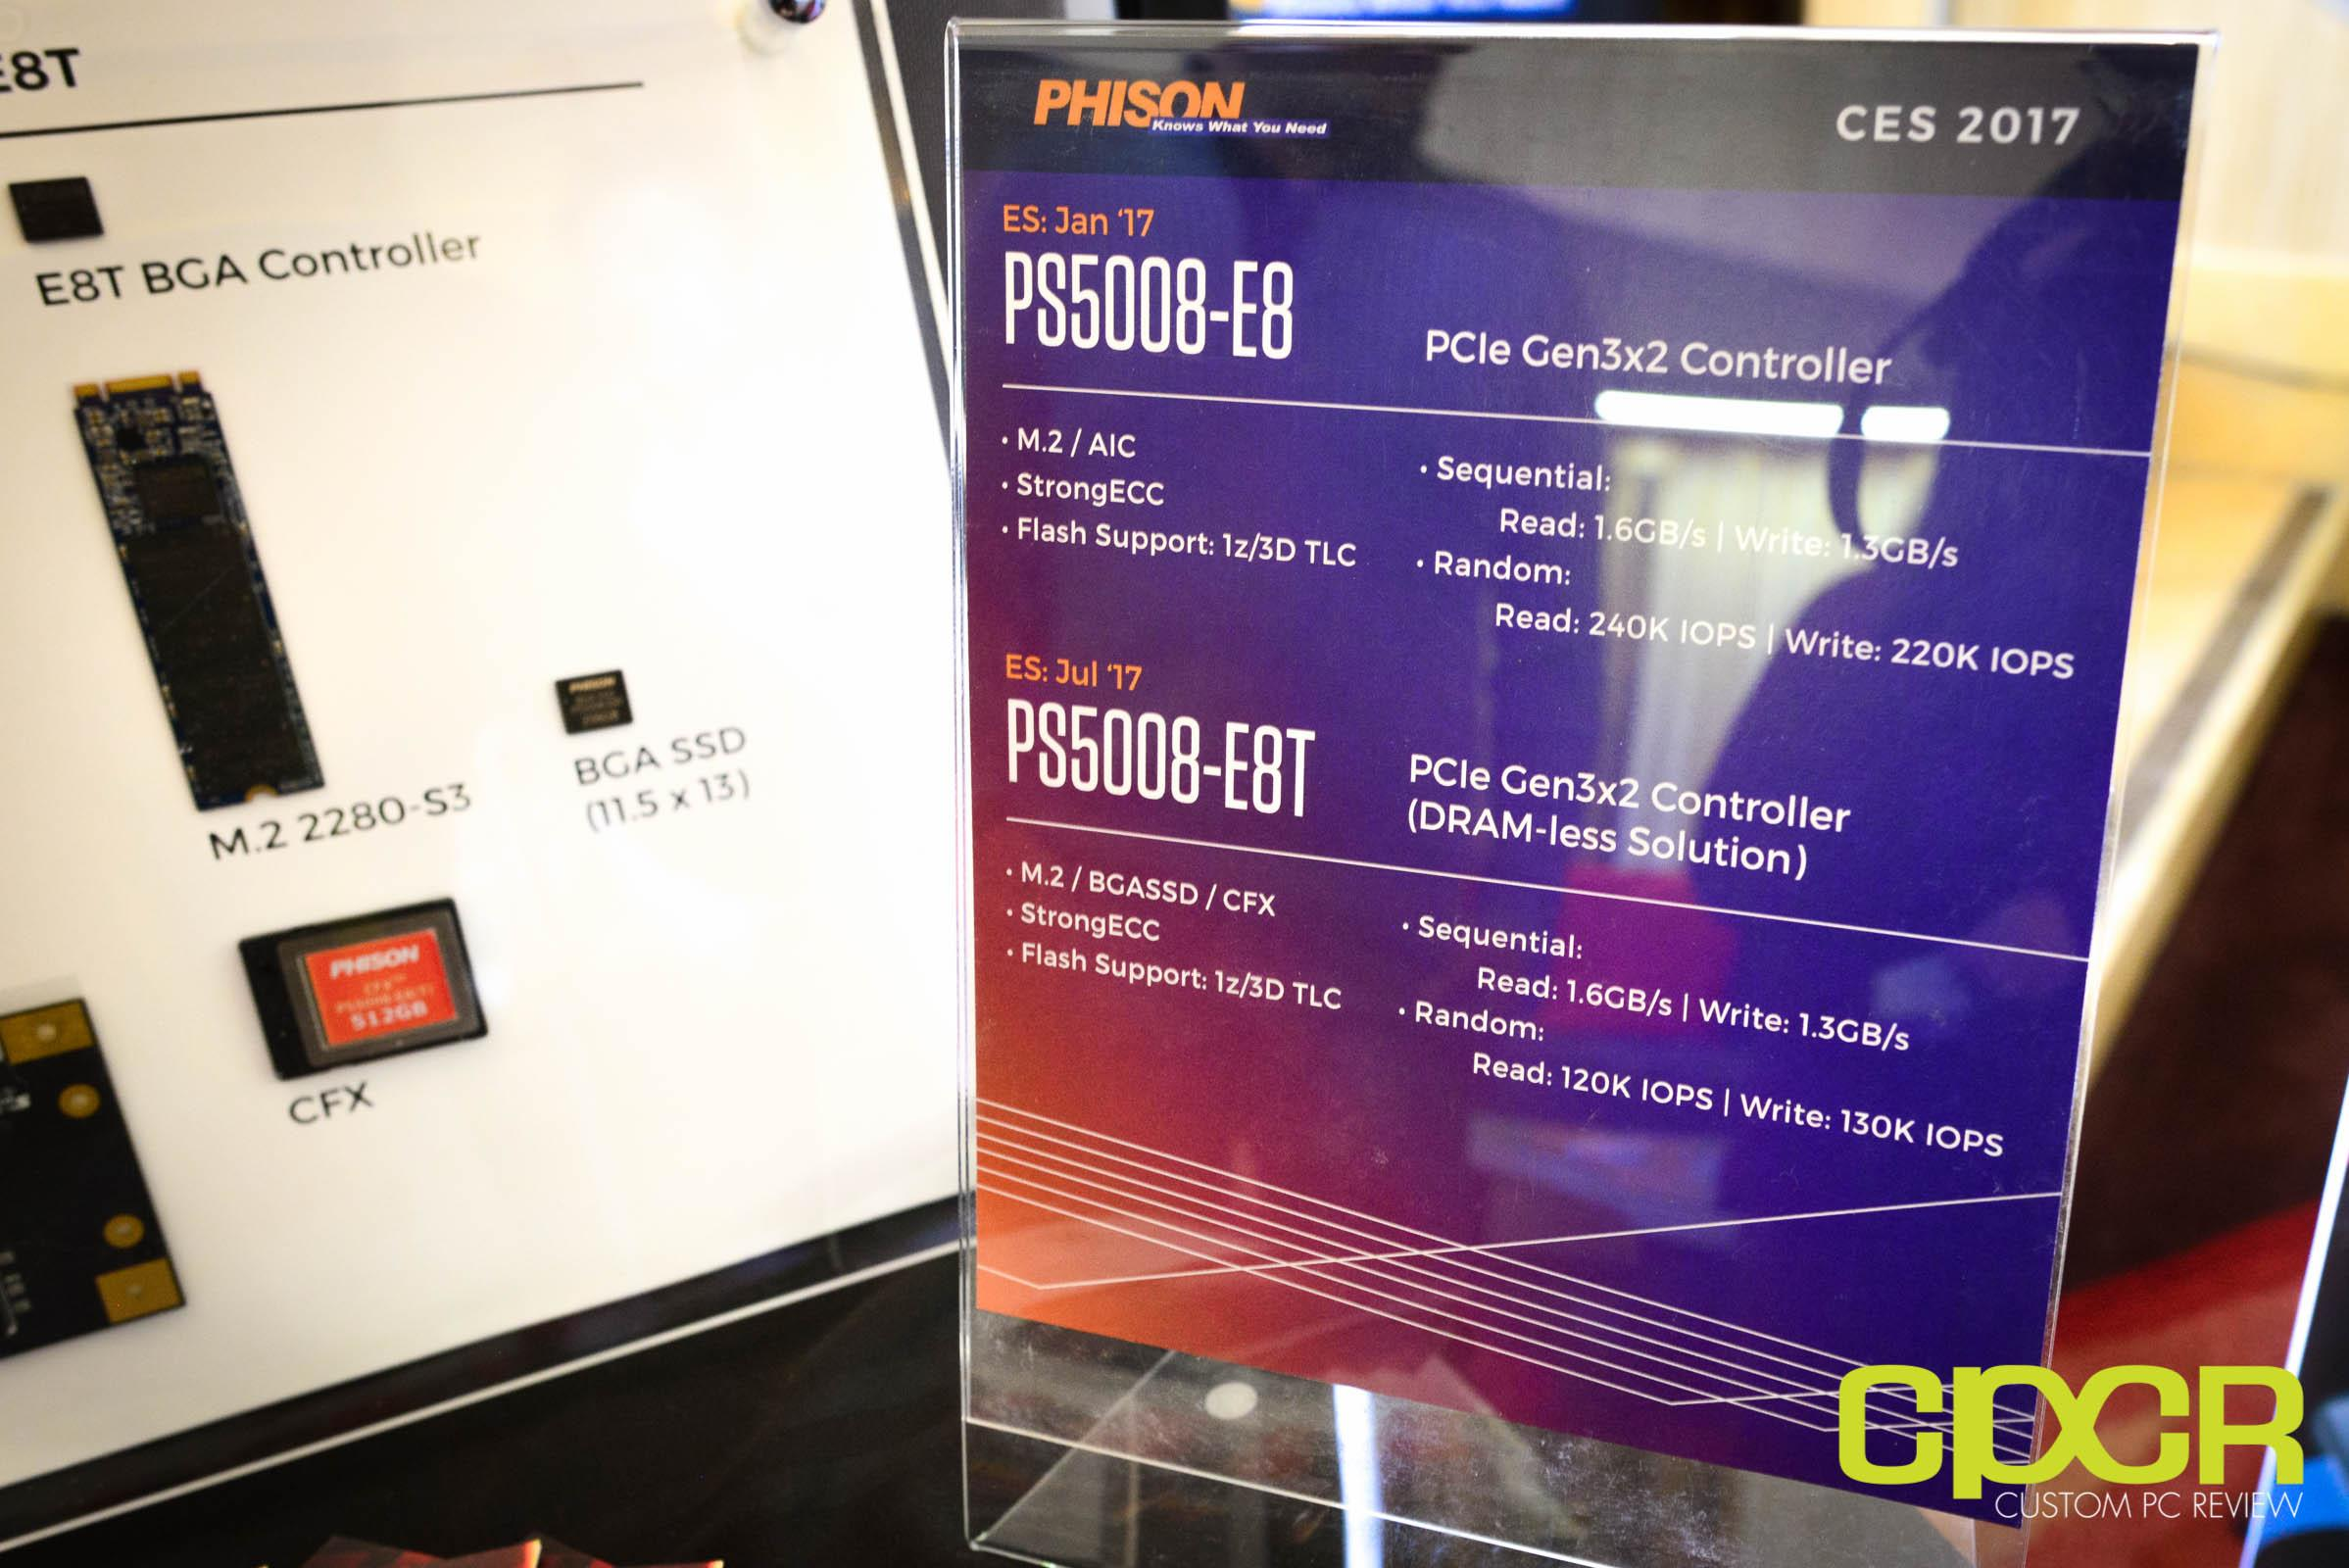 普及NVMe!群聯秀入門新控制器S5008-E8T:自帶HMB - XFastest - phison-e8-ssd-controller-ces-2017-custom-pc-review-3.jpg